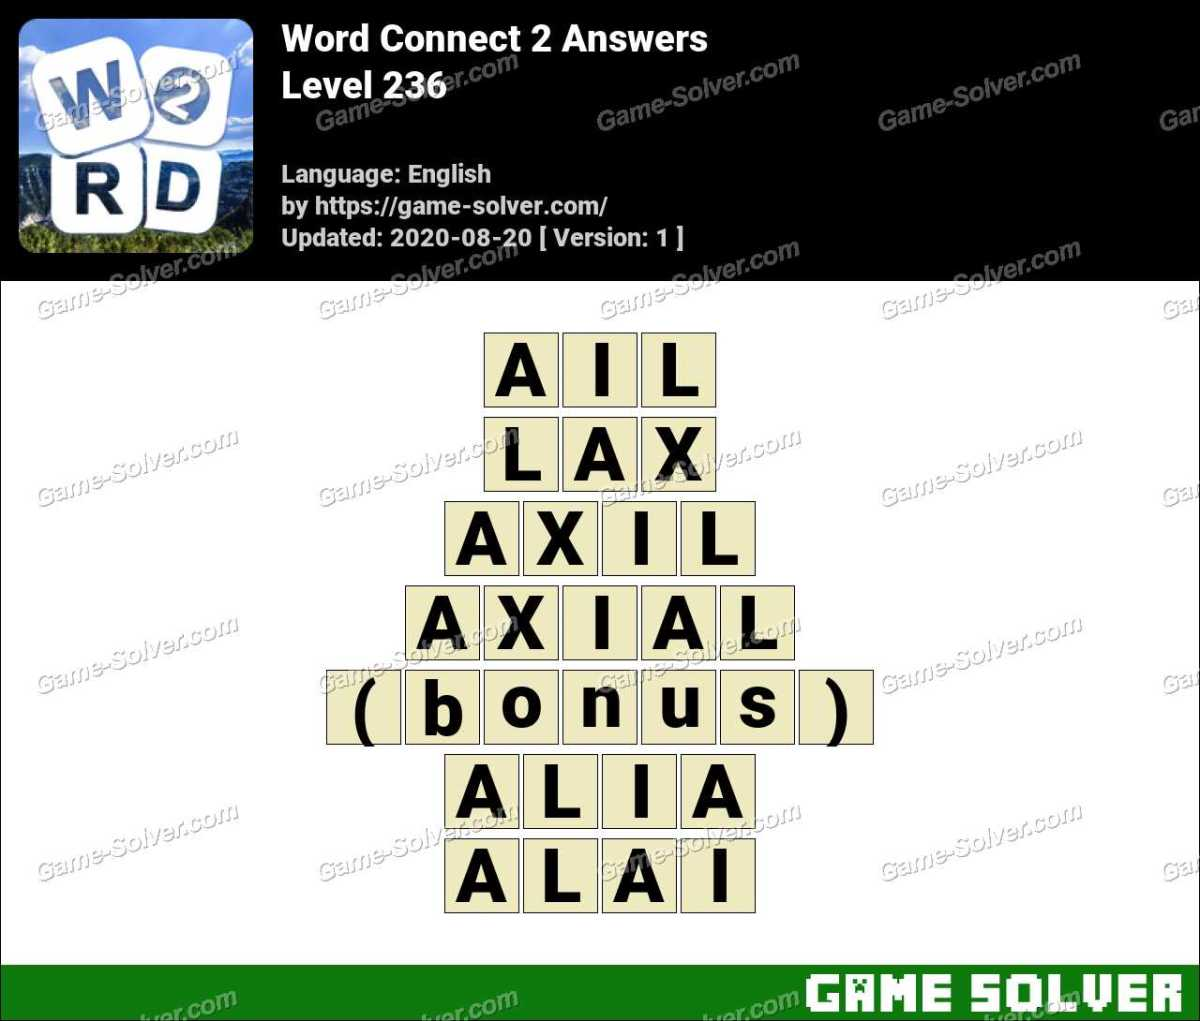 Word Connect 2 Level 236 Answers